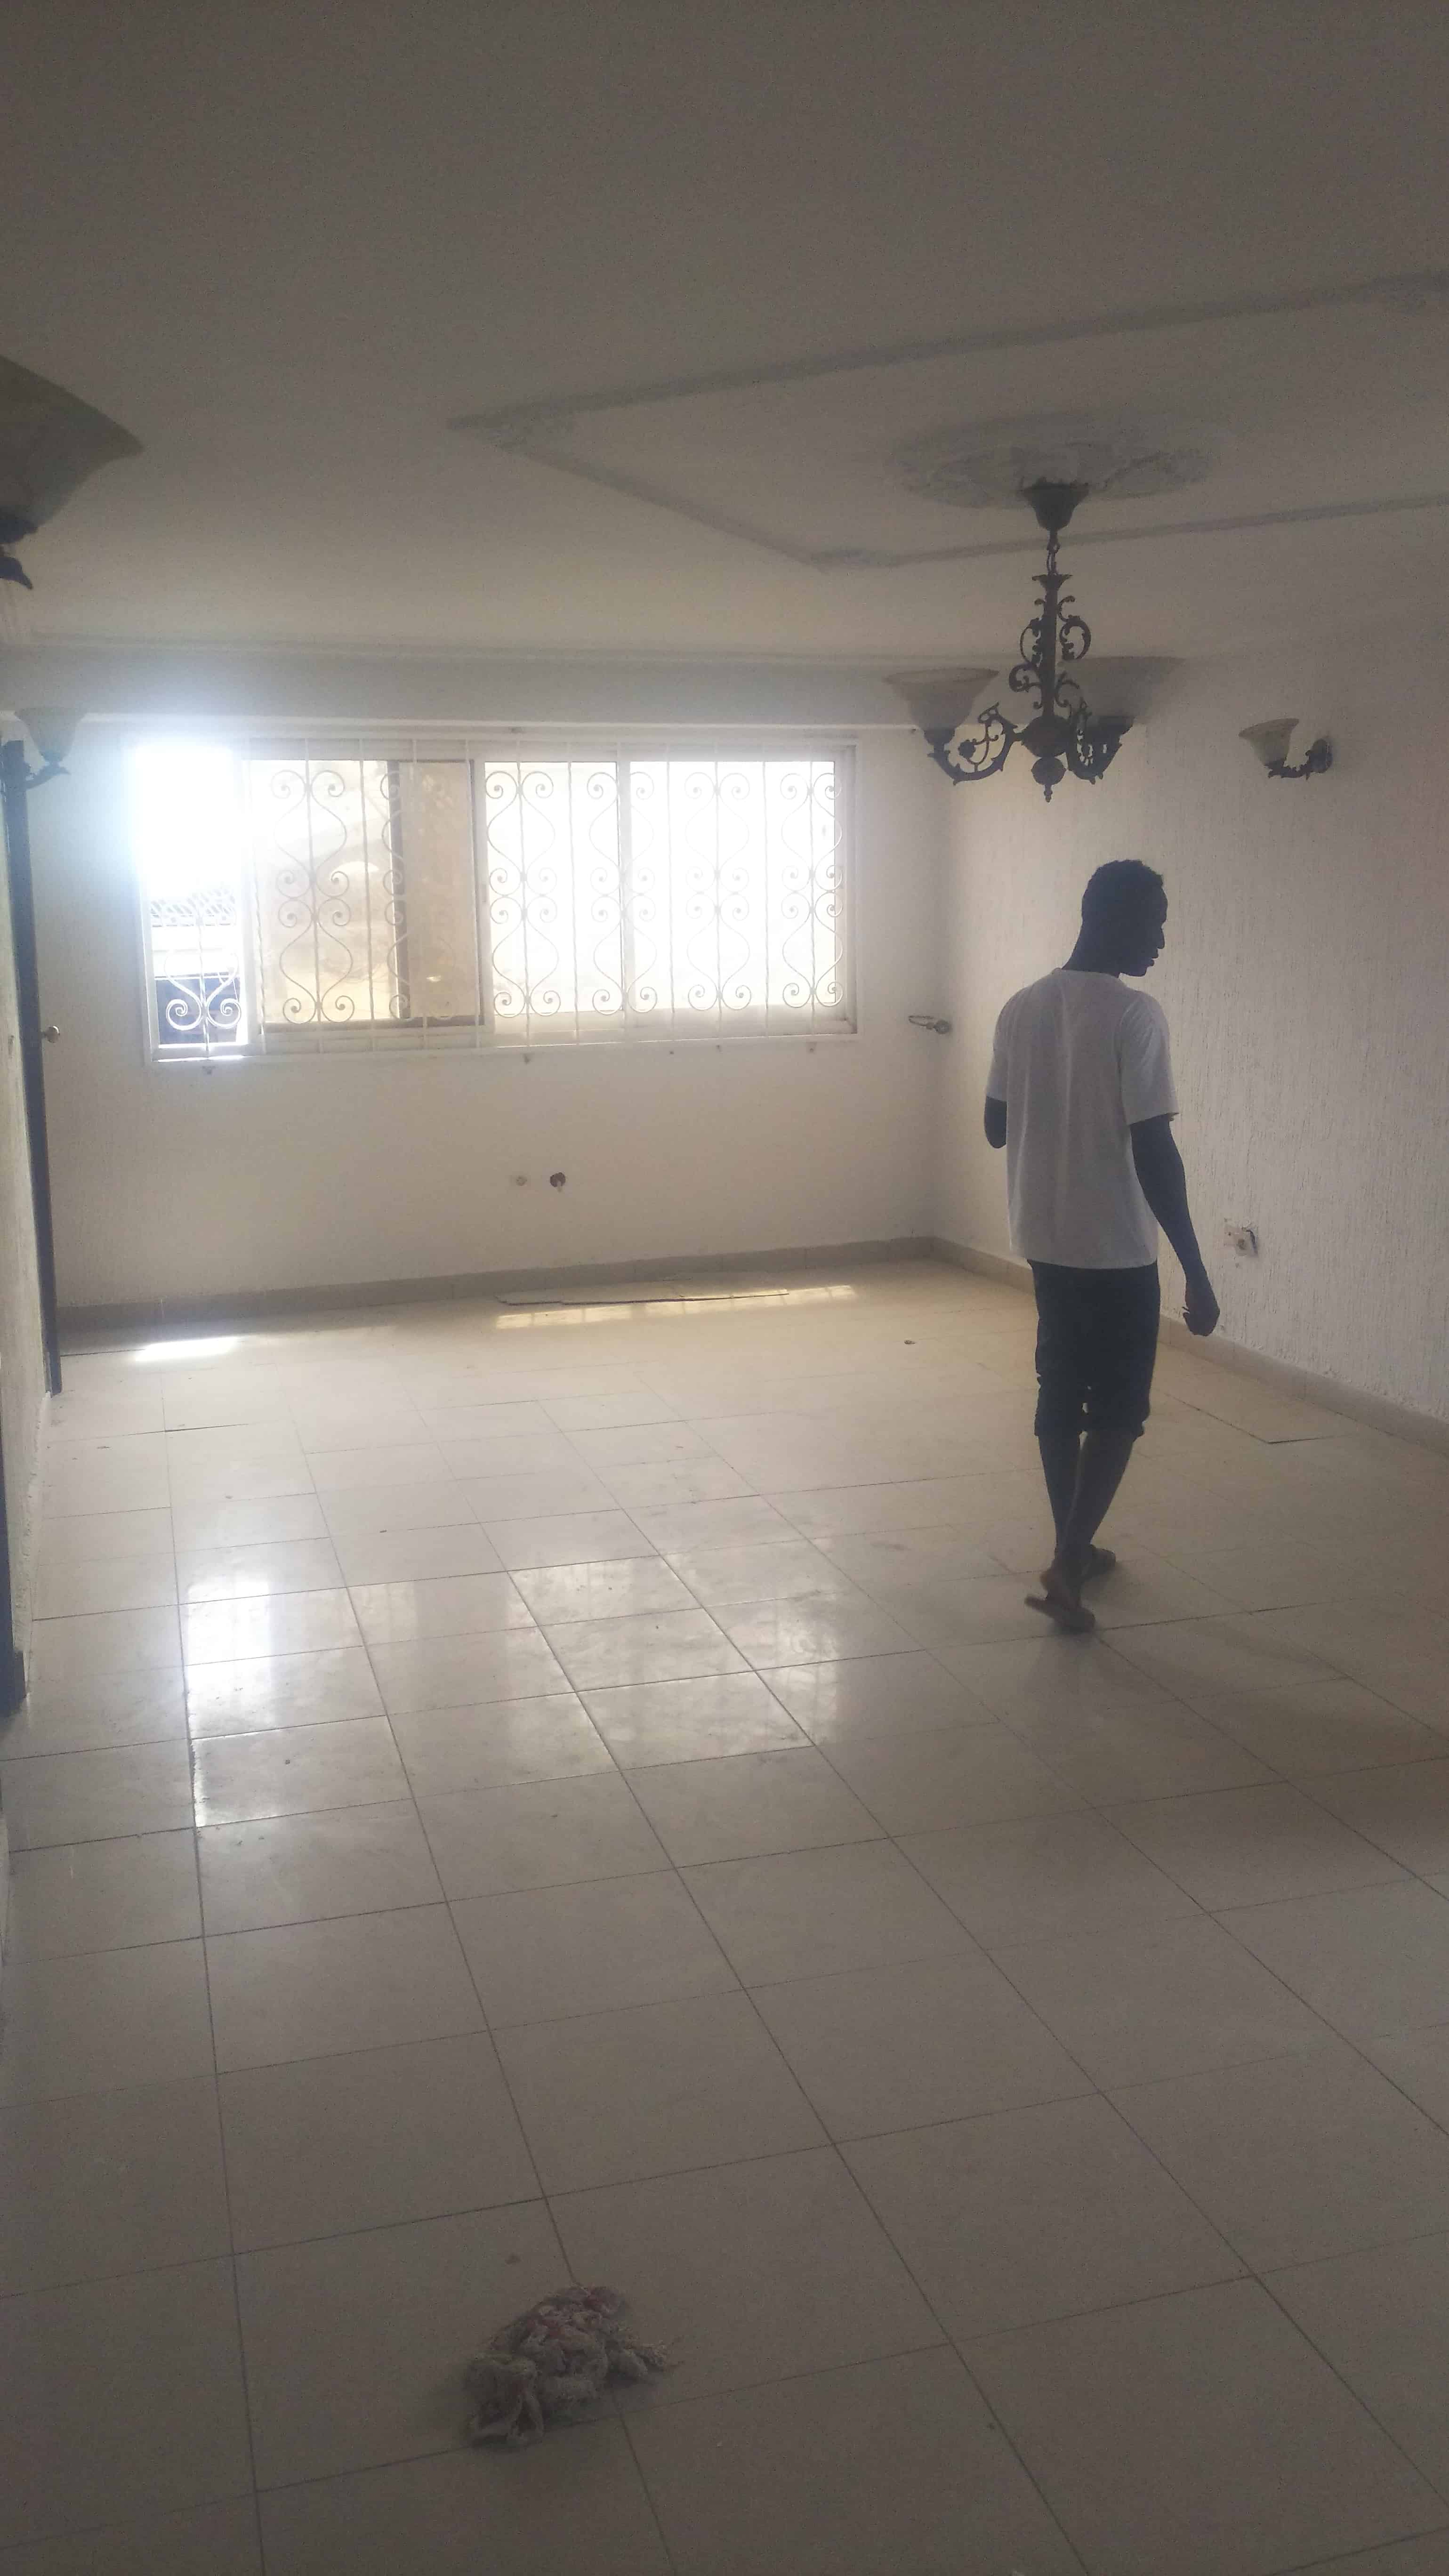 Apartment to rent - Douala, Ndoghem, Ndogbong, Socaver - 1 living room(s), 2 bedroom(s), 2 bathroom(s) - 170 000 FCFA / month